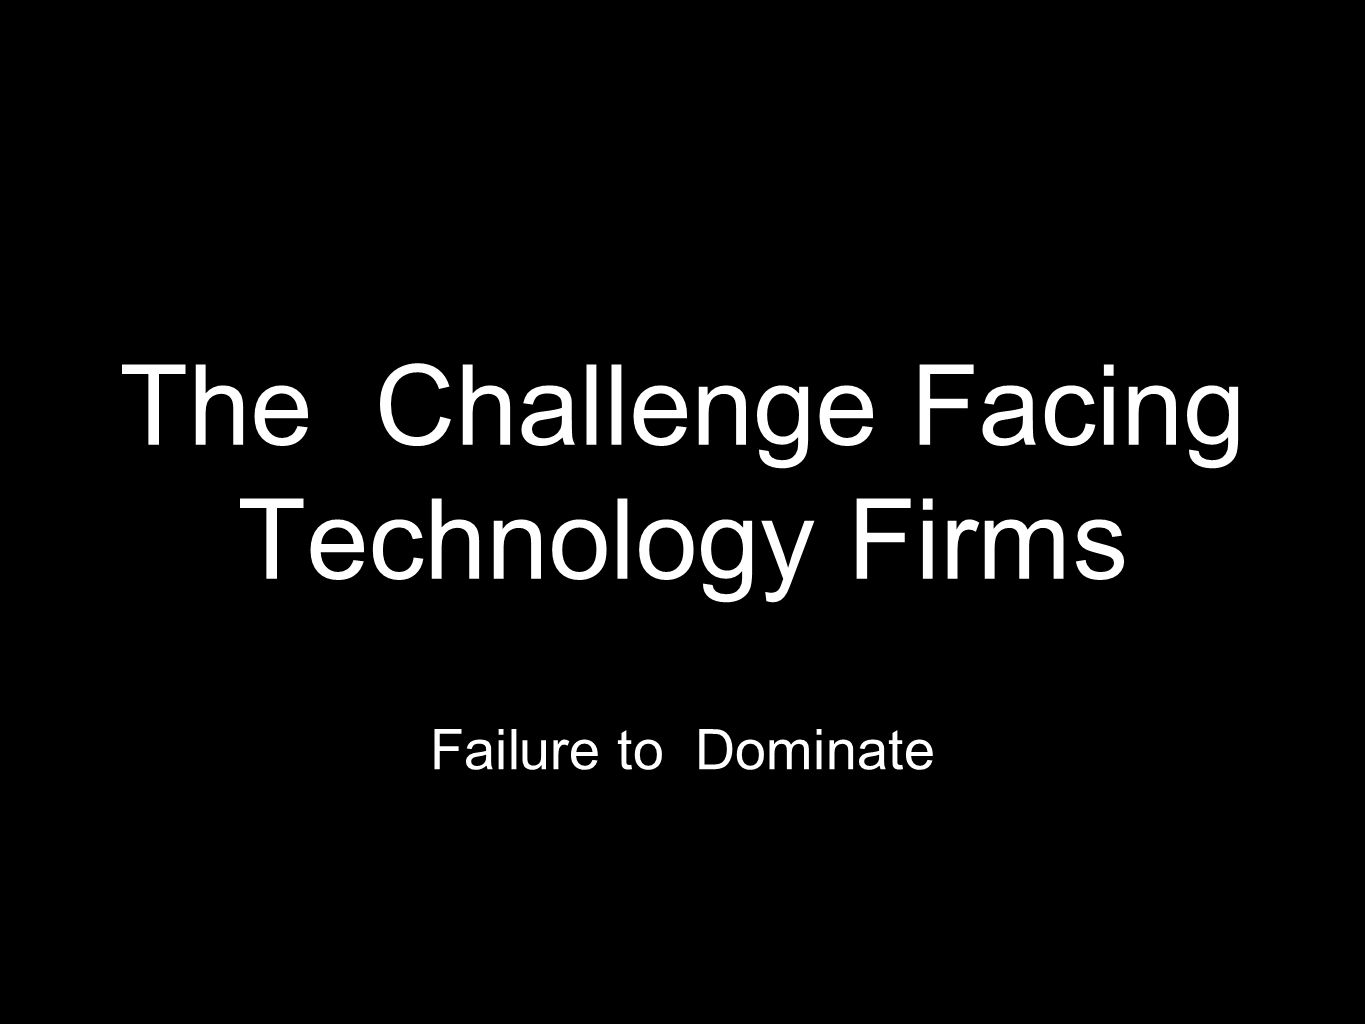 The Challenge Facing Technology Firms Failure to Dominate